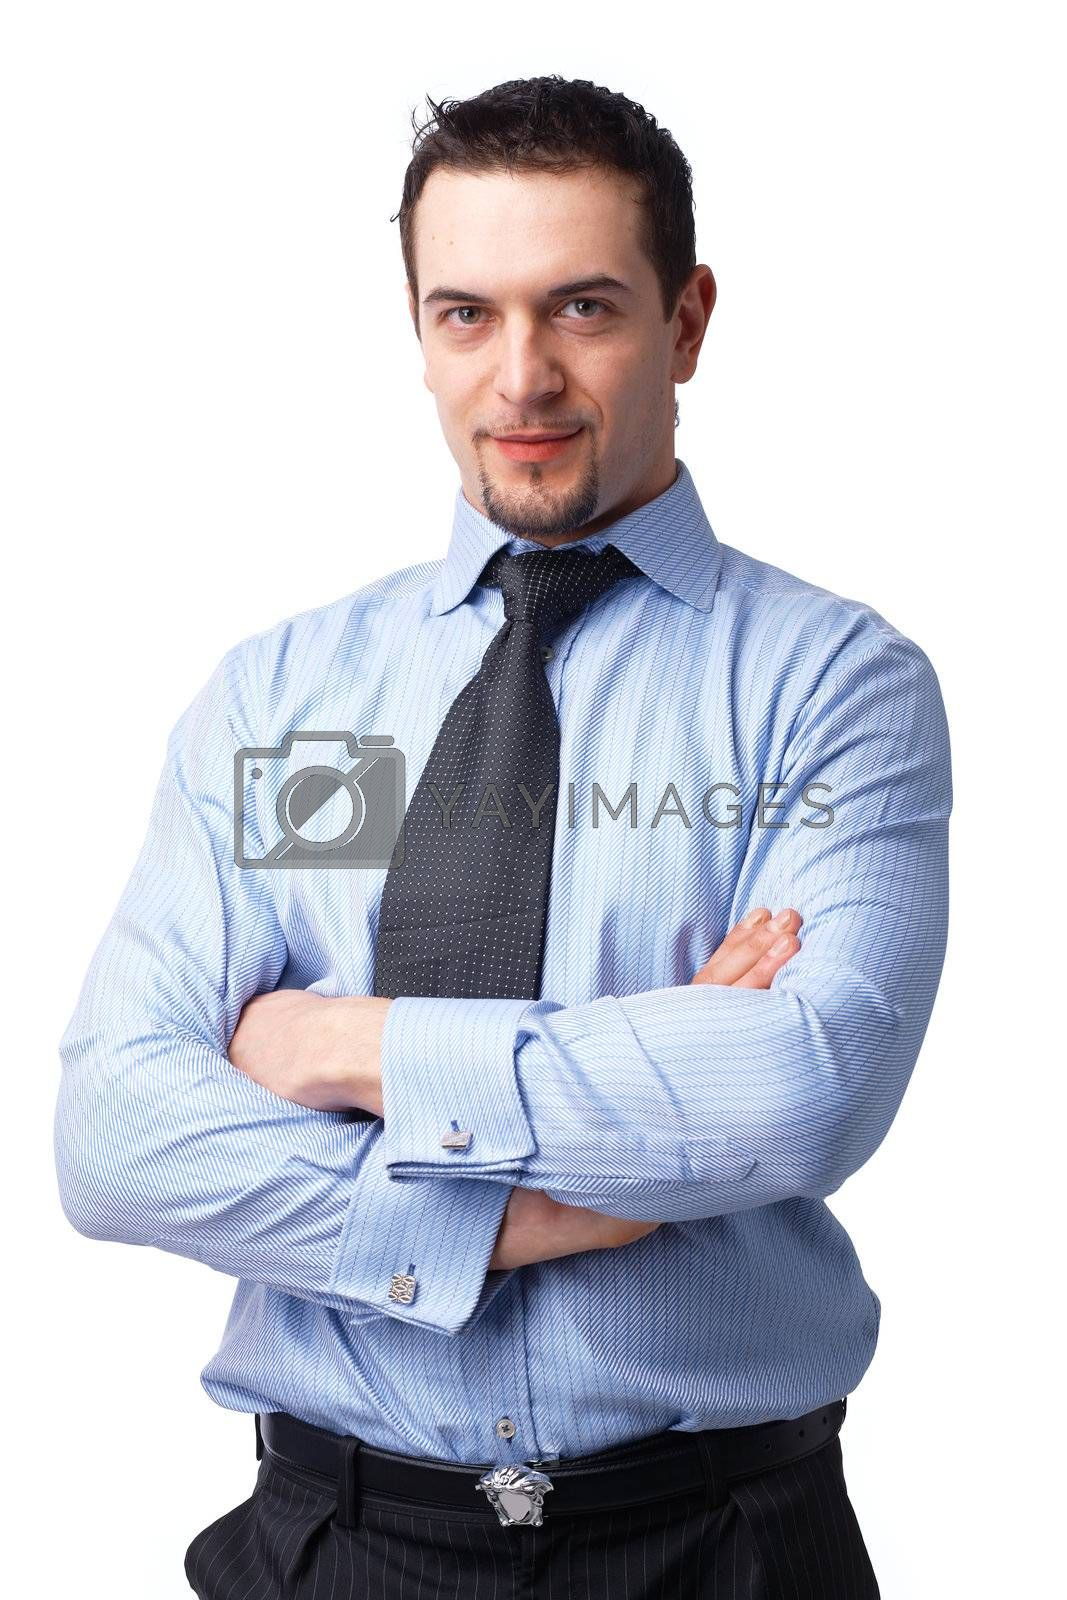 Portrait of successful businessman, smiling with his hands folded over white background.